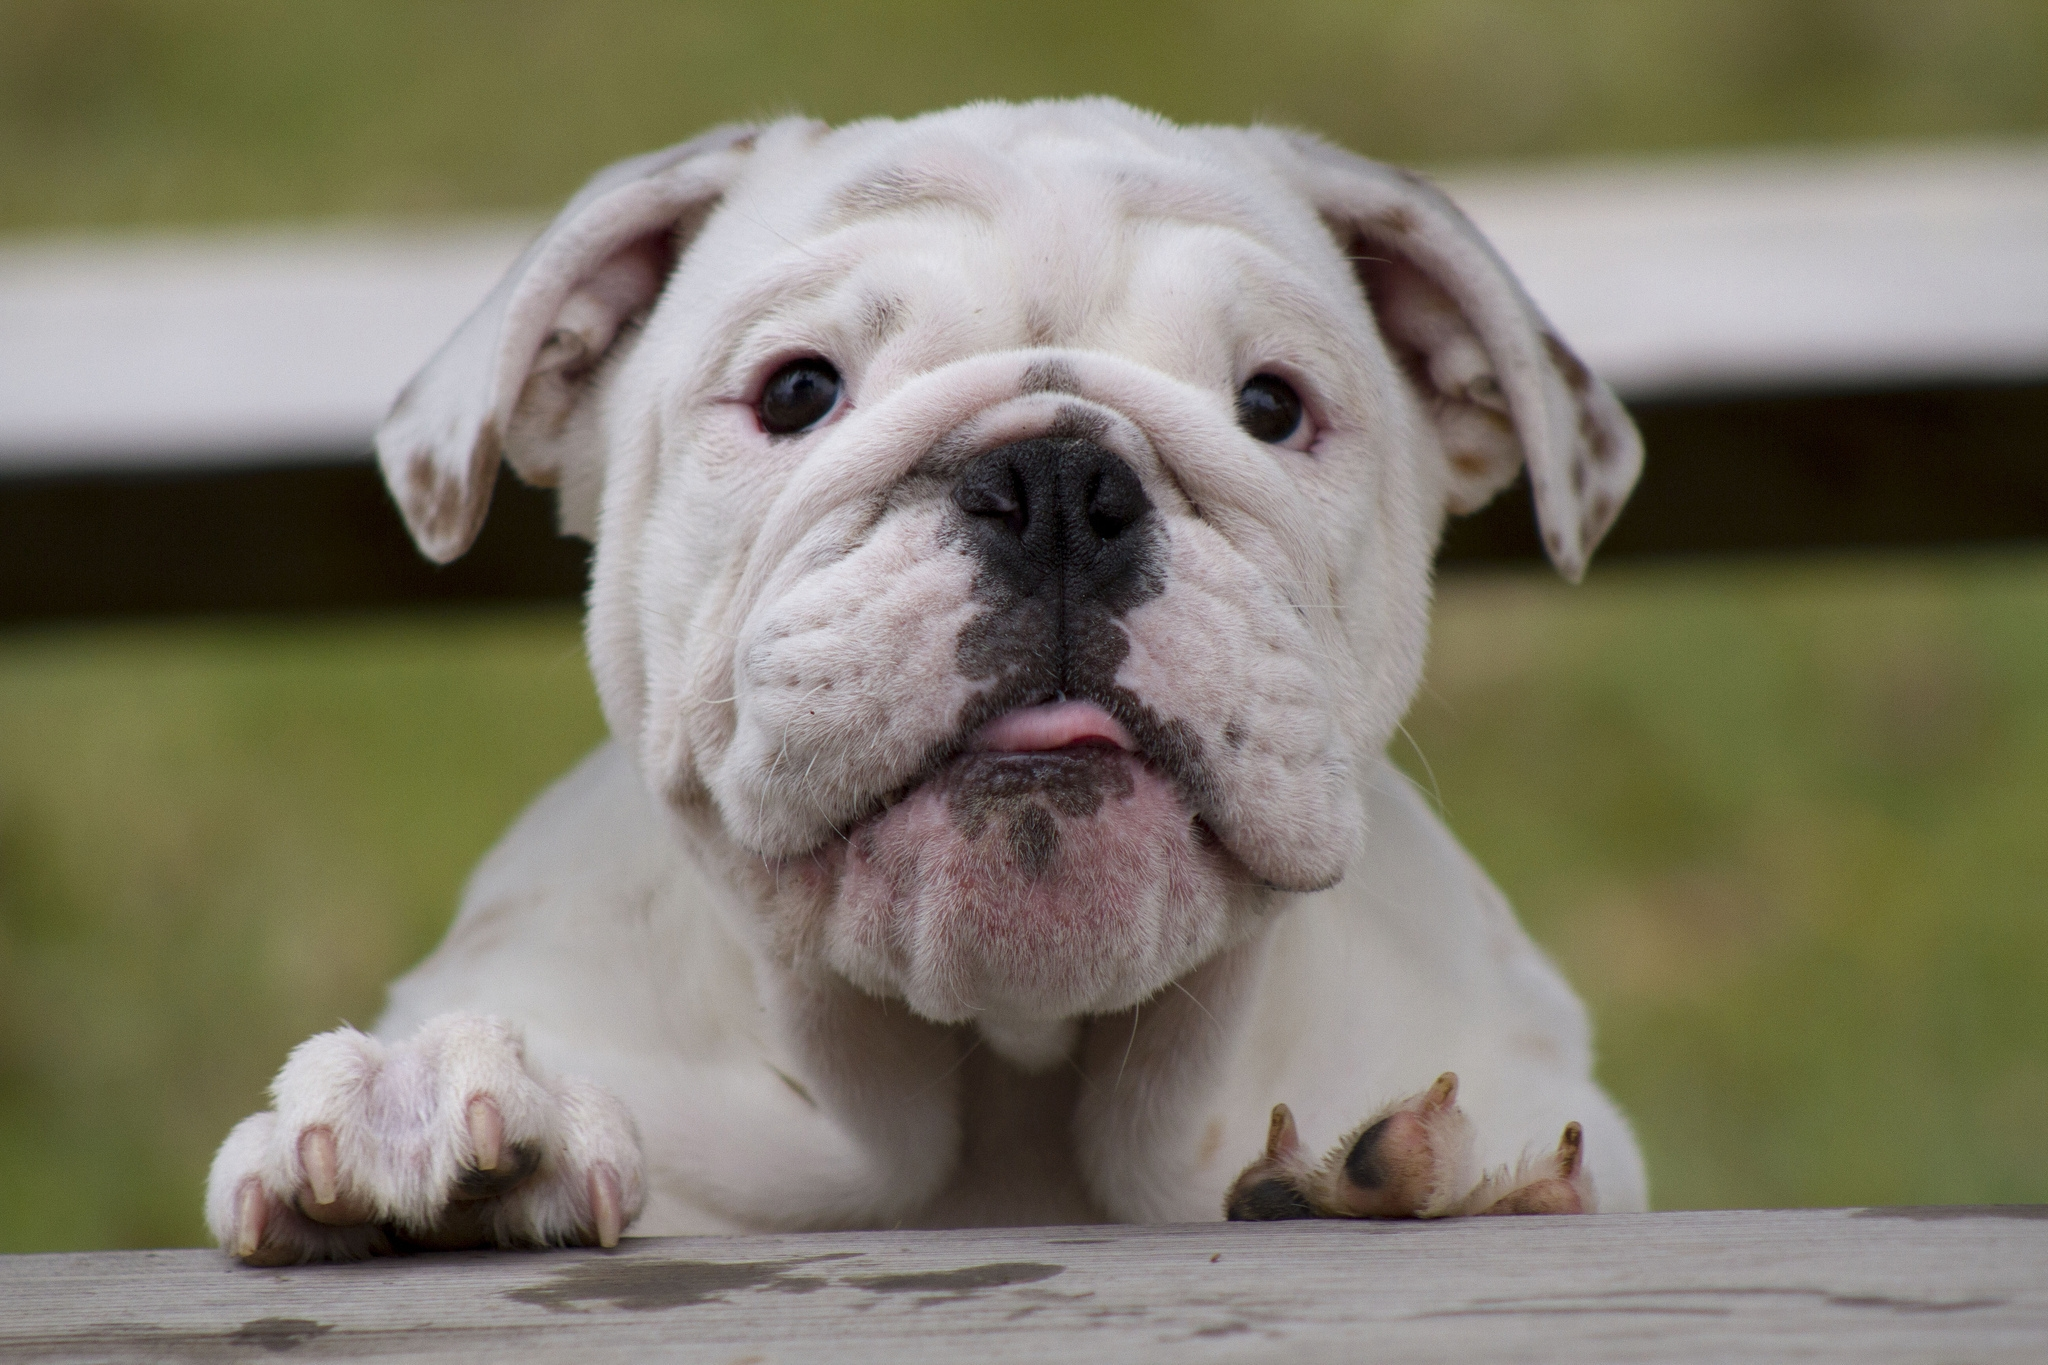 78706 download wallpaper Animals, Bulldog, Dog, Muzzle, Fat, Thick, Watch, To Watch screensavers and pictures for free